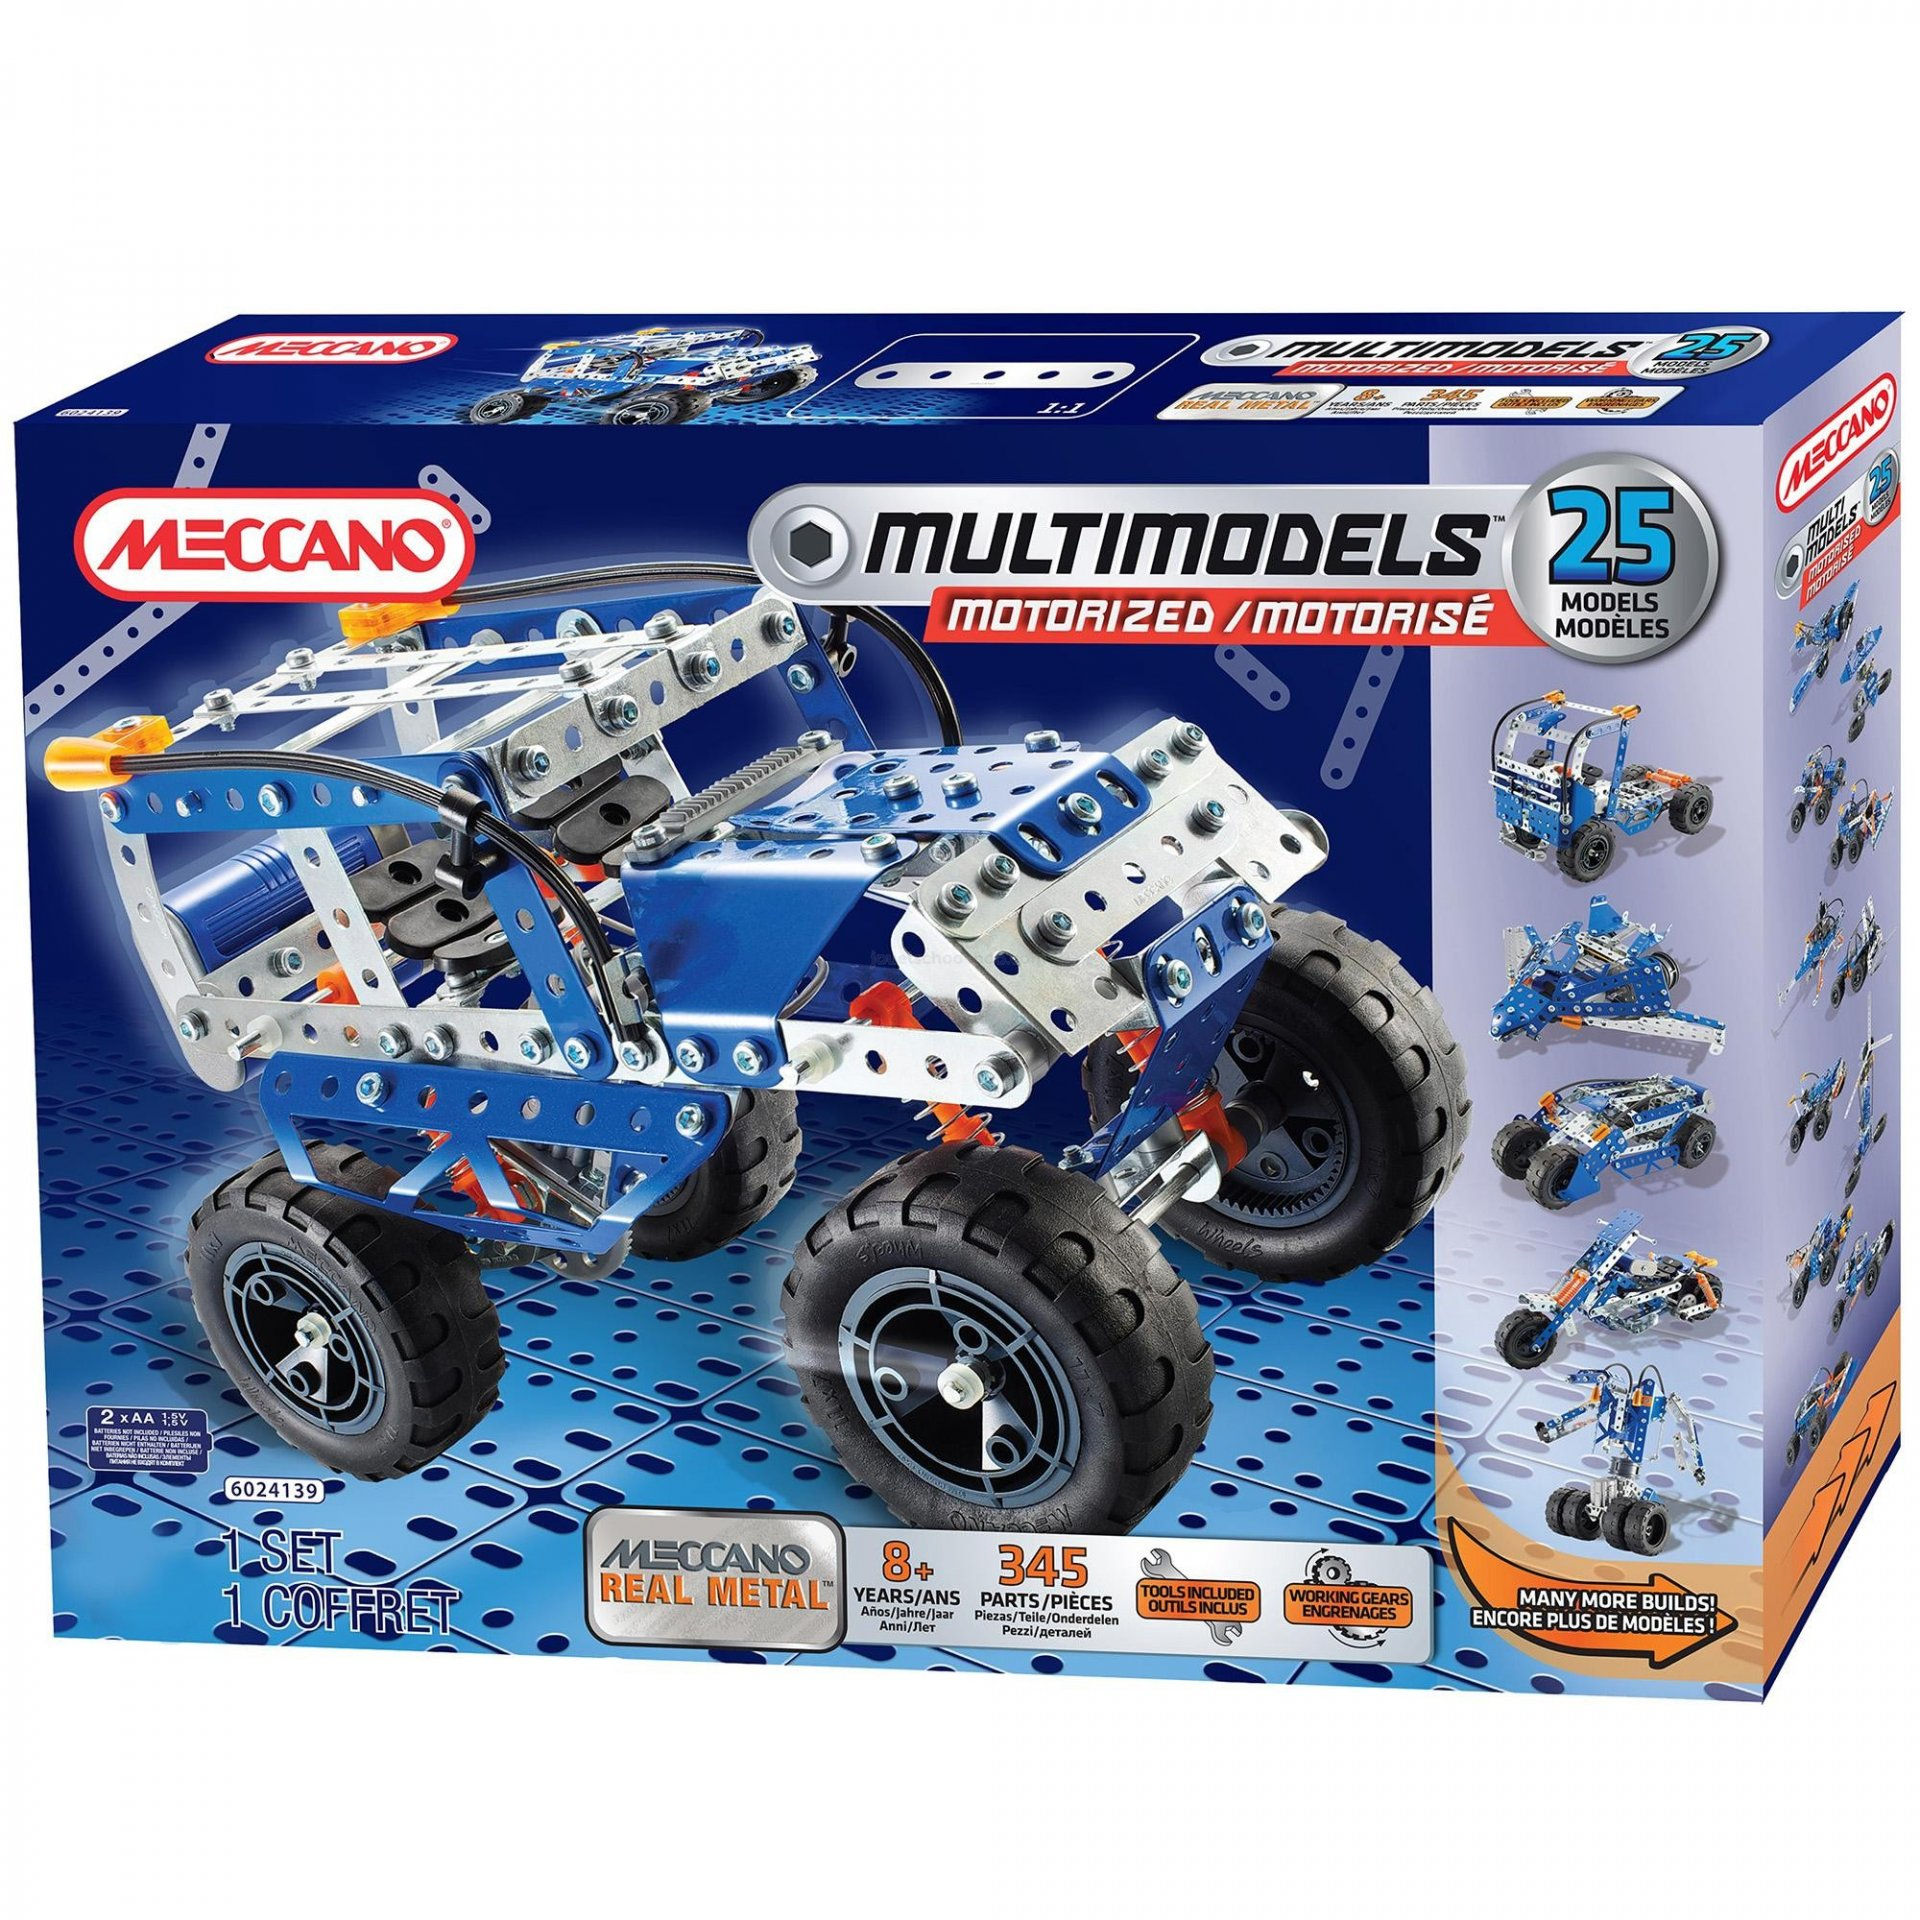 Construction Sets Aspergers Autism Forum Control Your Meccano Models Or Anything Else From Windows Pc Multimodels 25 Set 0